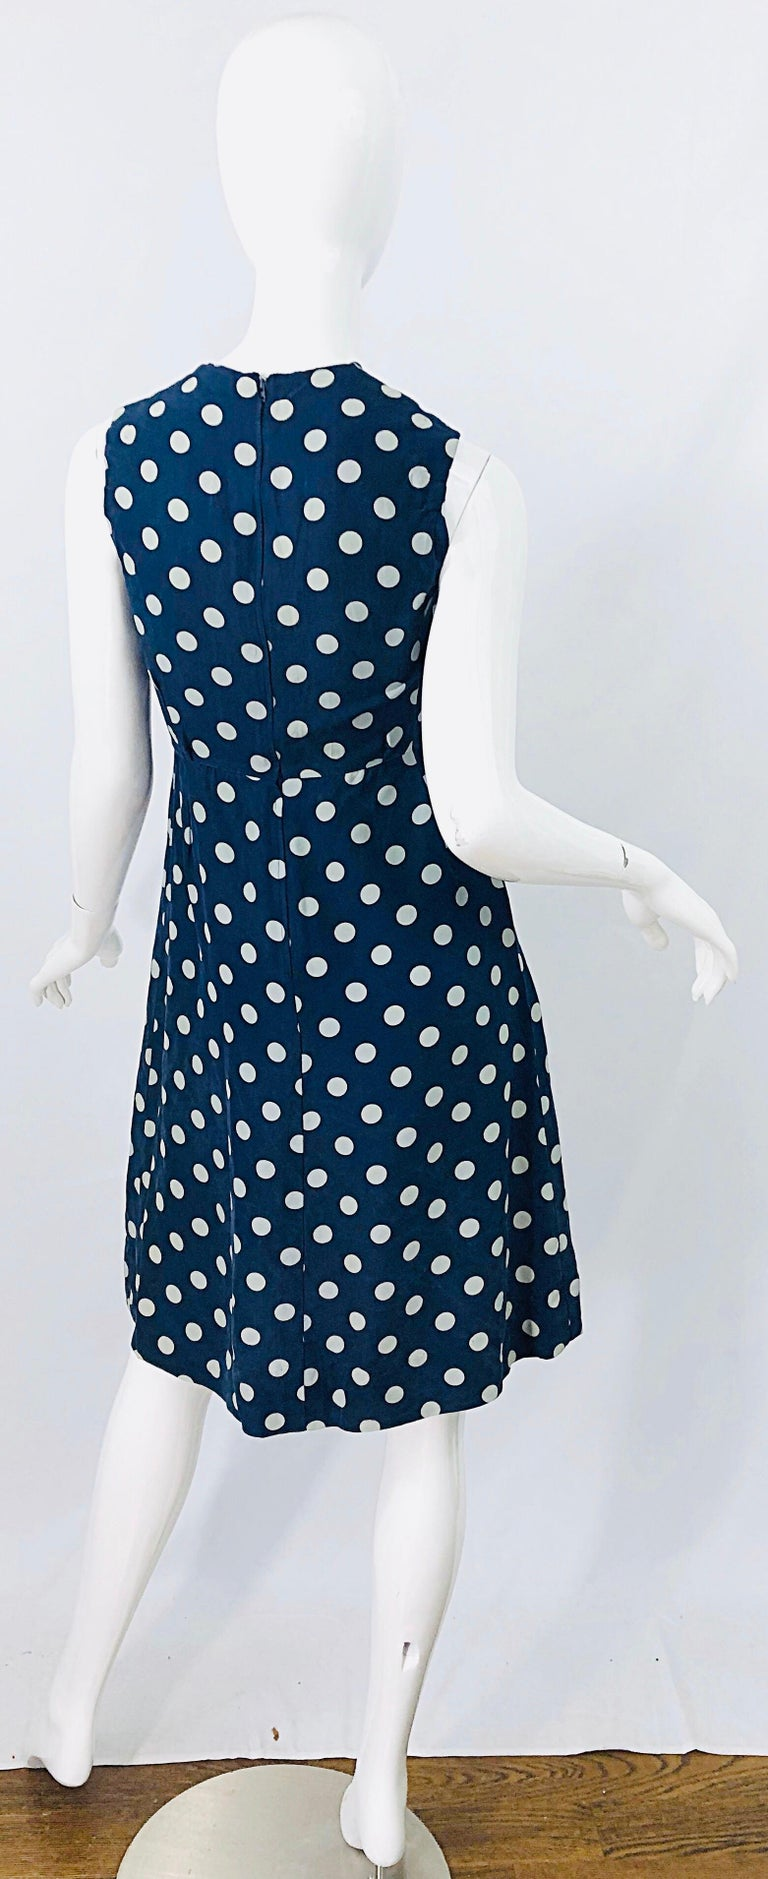 Women's Vintage Yves Saint Laurent 1980s Navy Blue + White Polka Dot Silk 80s Dress YSL For Sale